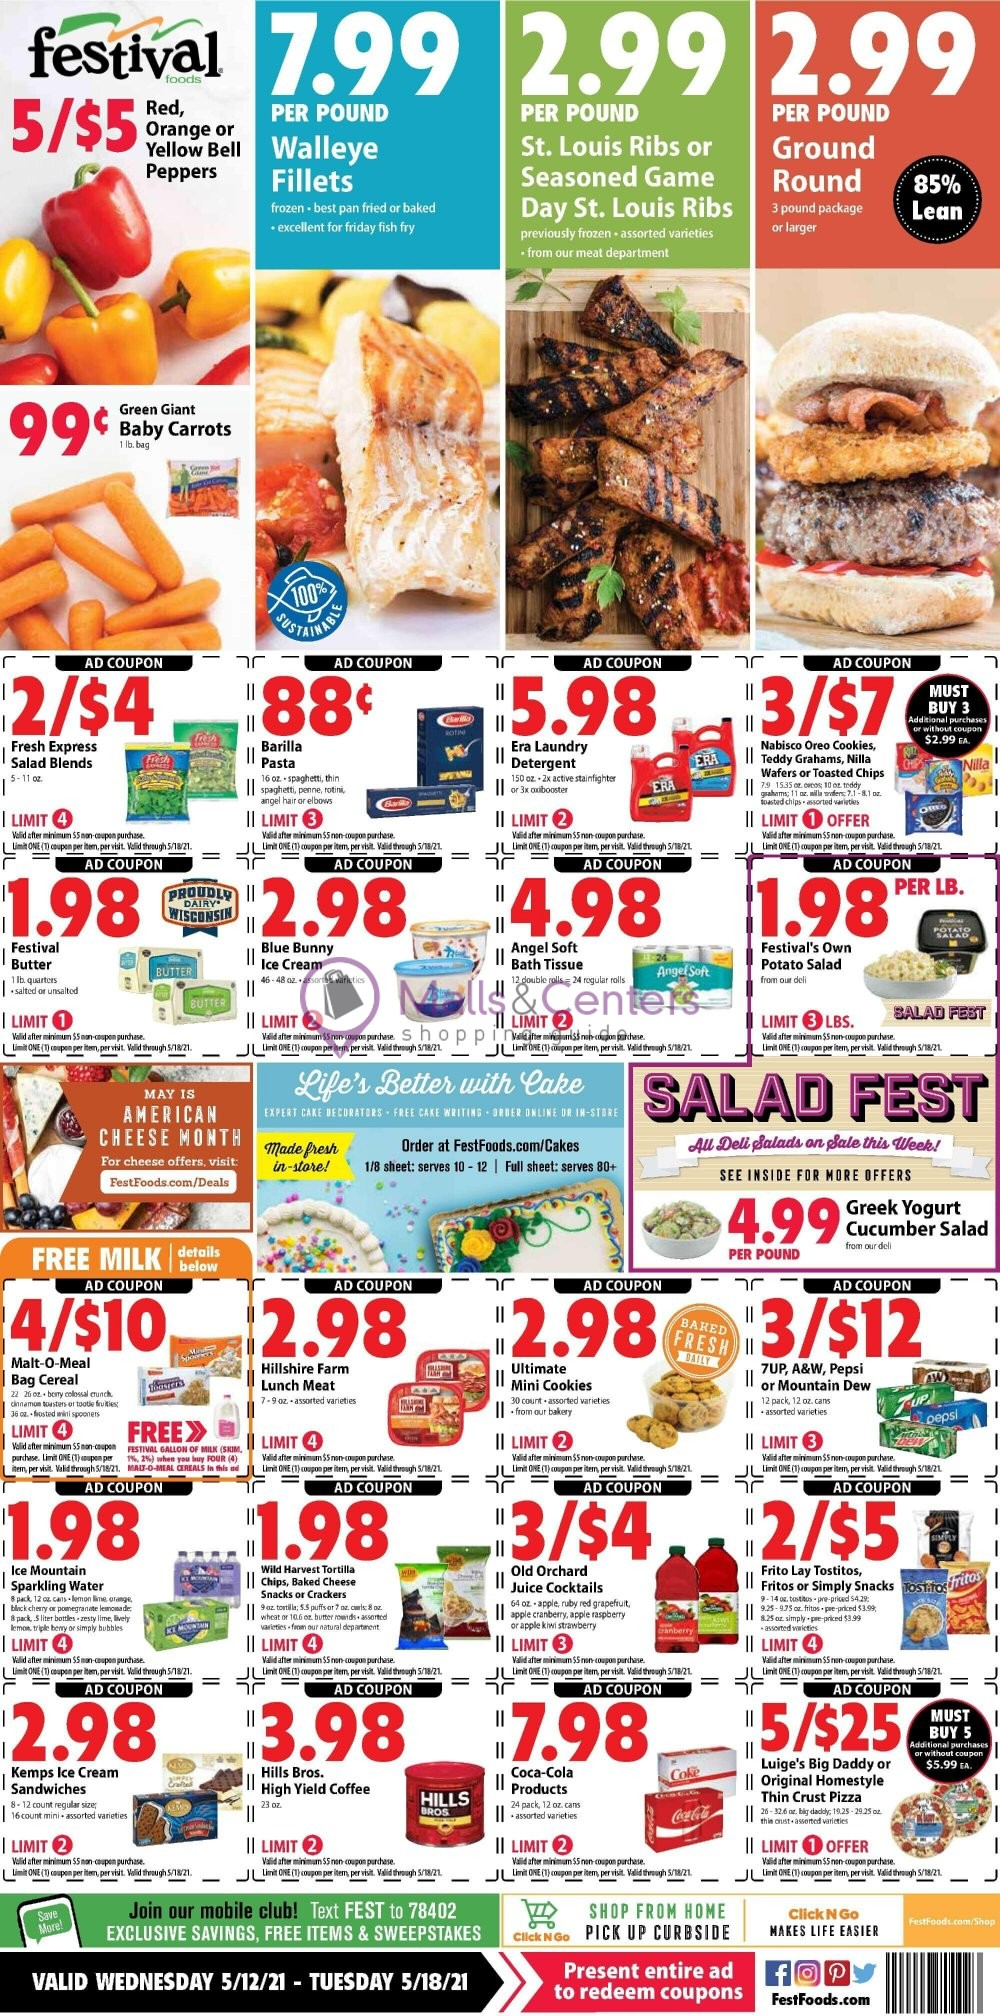 weekly ads Festival Foods - page 1 - mallscenters.com